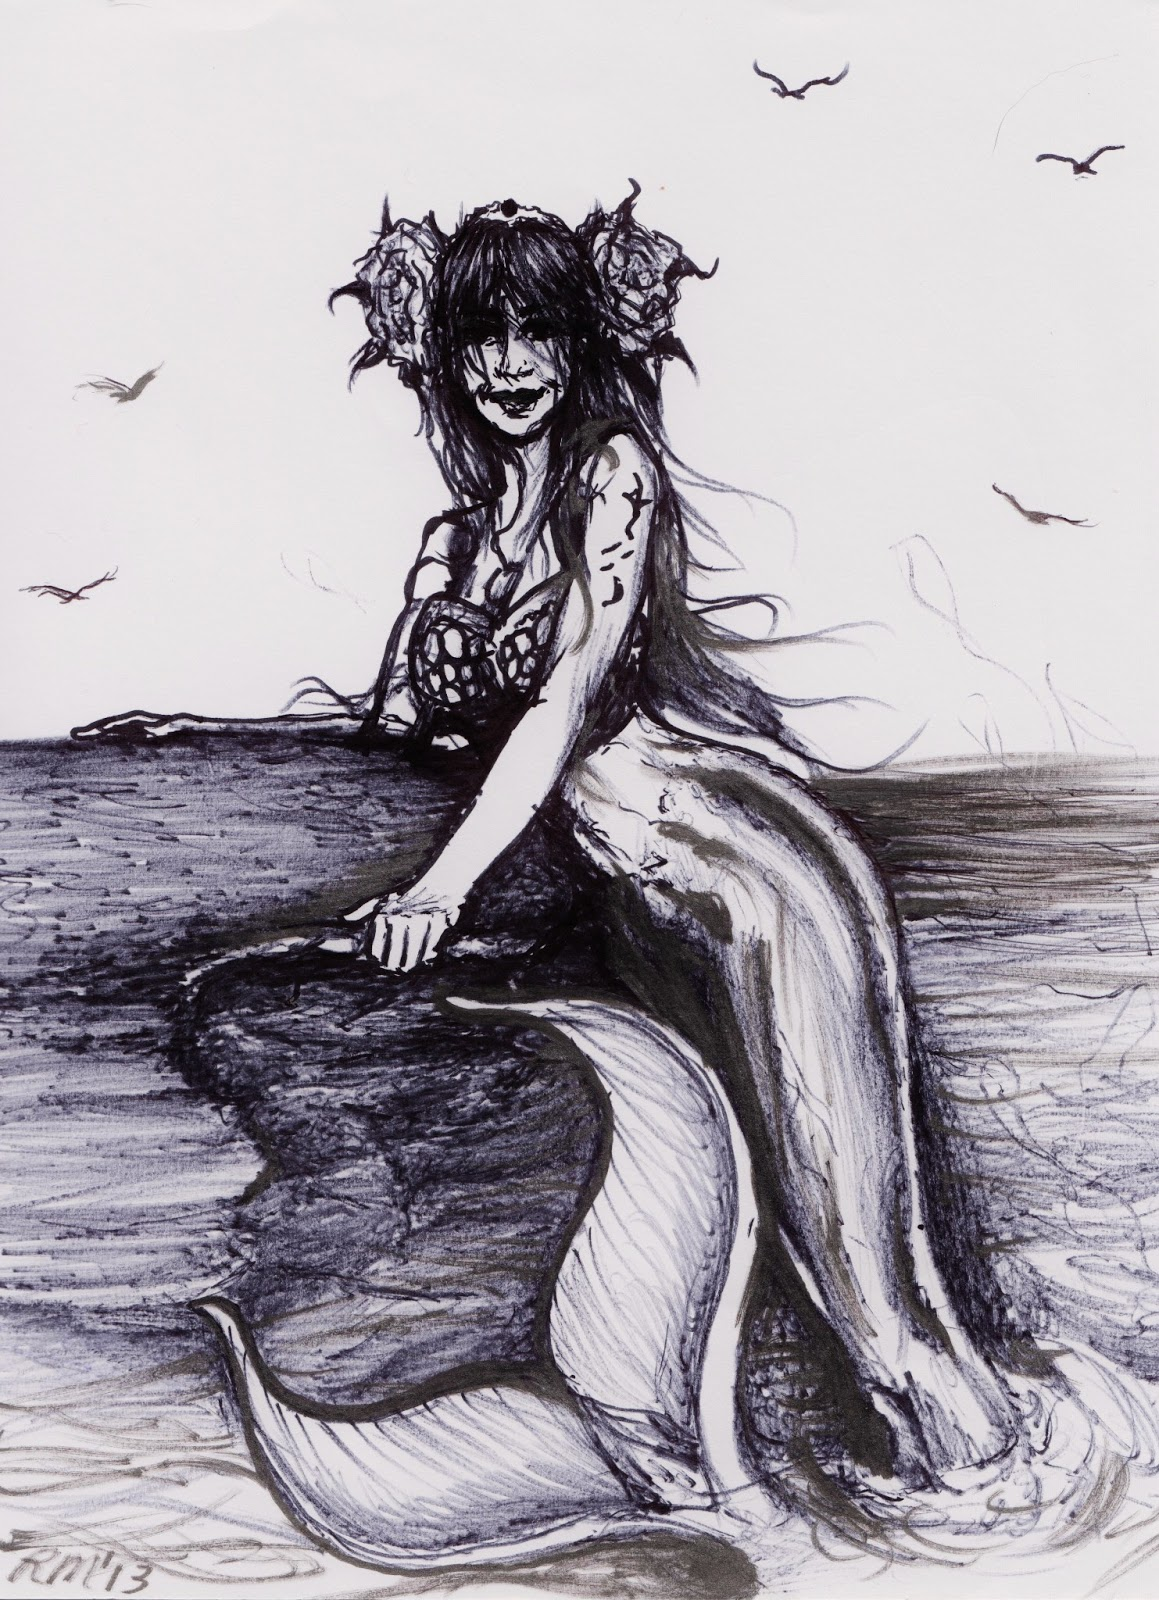 1159x1600 Alternate Visions I Has A New Mermaid Drawing! D